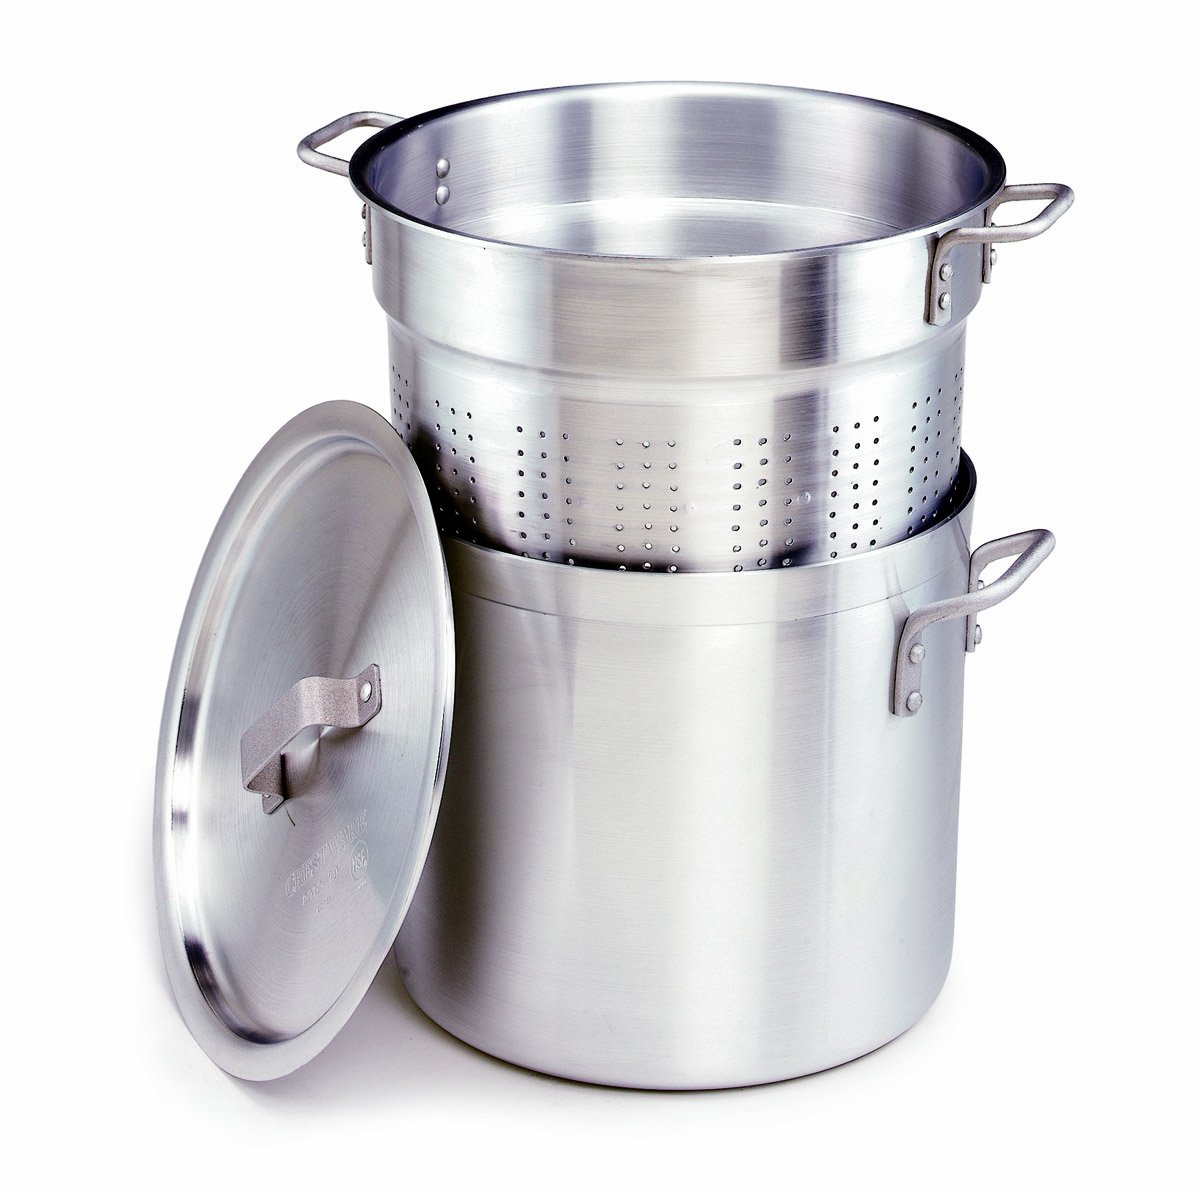 Crestware 20-Quart, 3-Piece Aluminum Pasta Cooker with Pot, Perforated Insert and Pan Cover